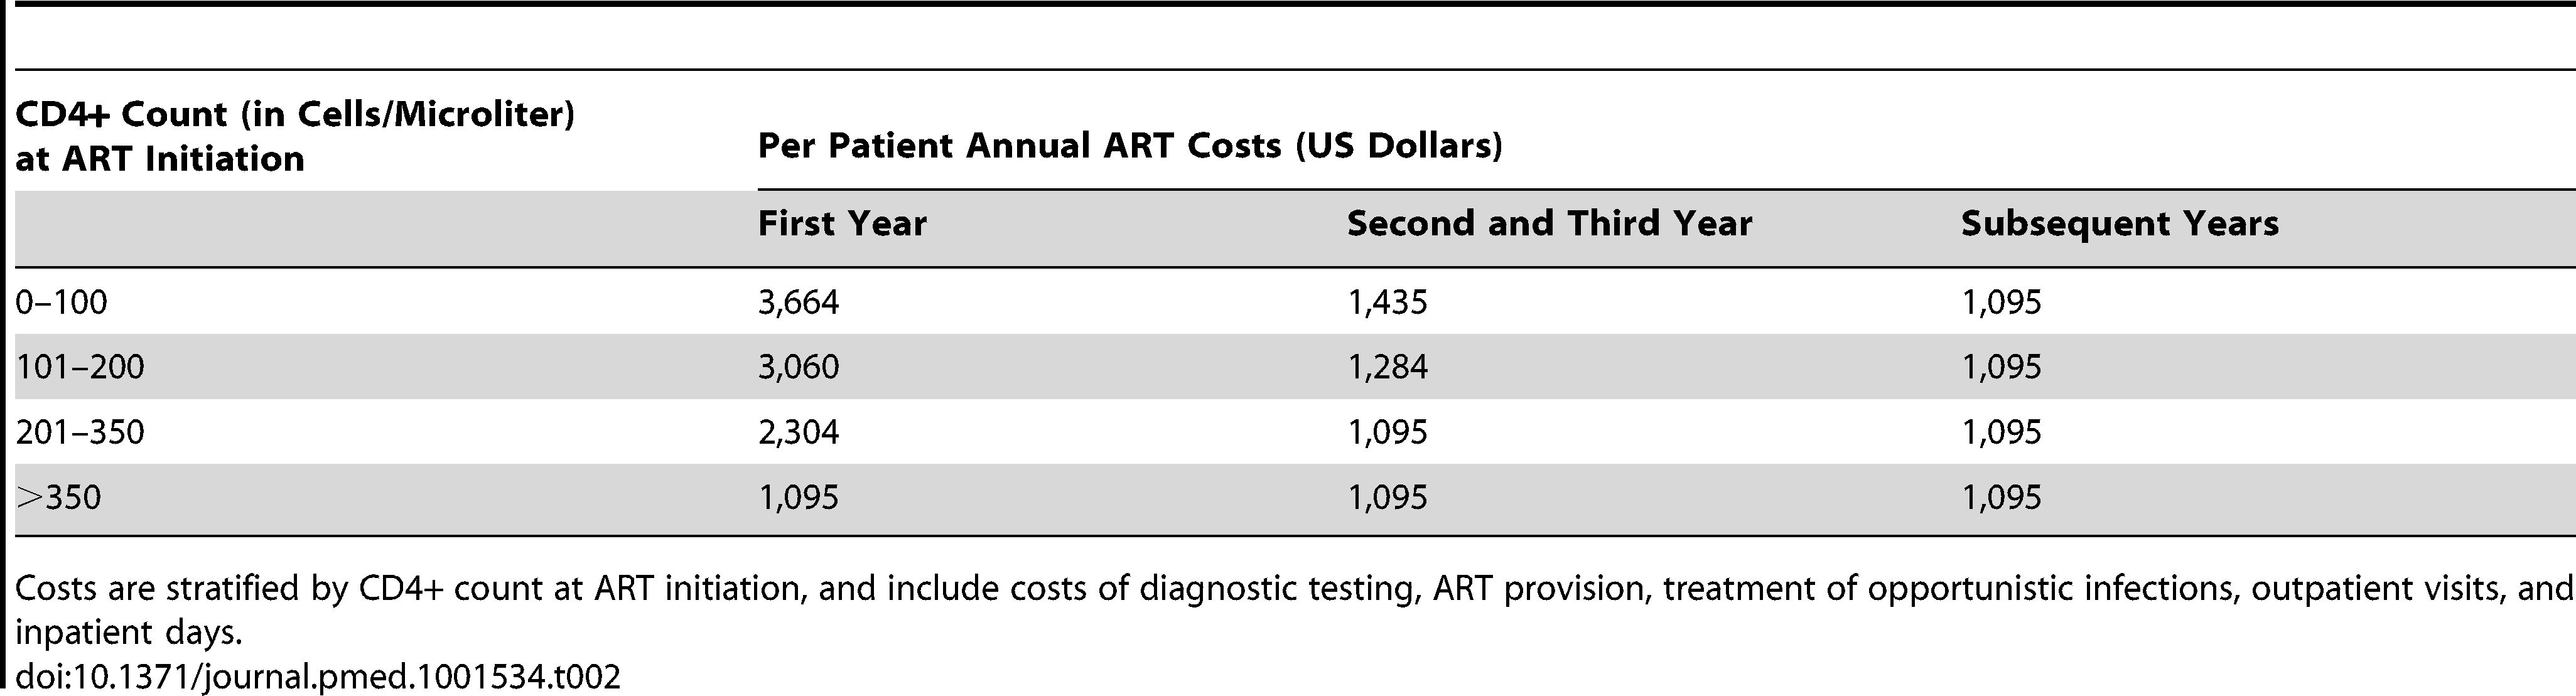 Cost input values used in this study.